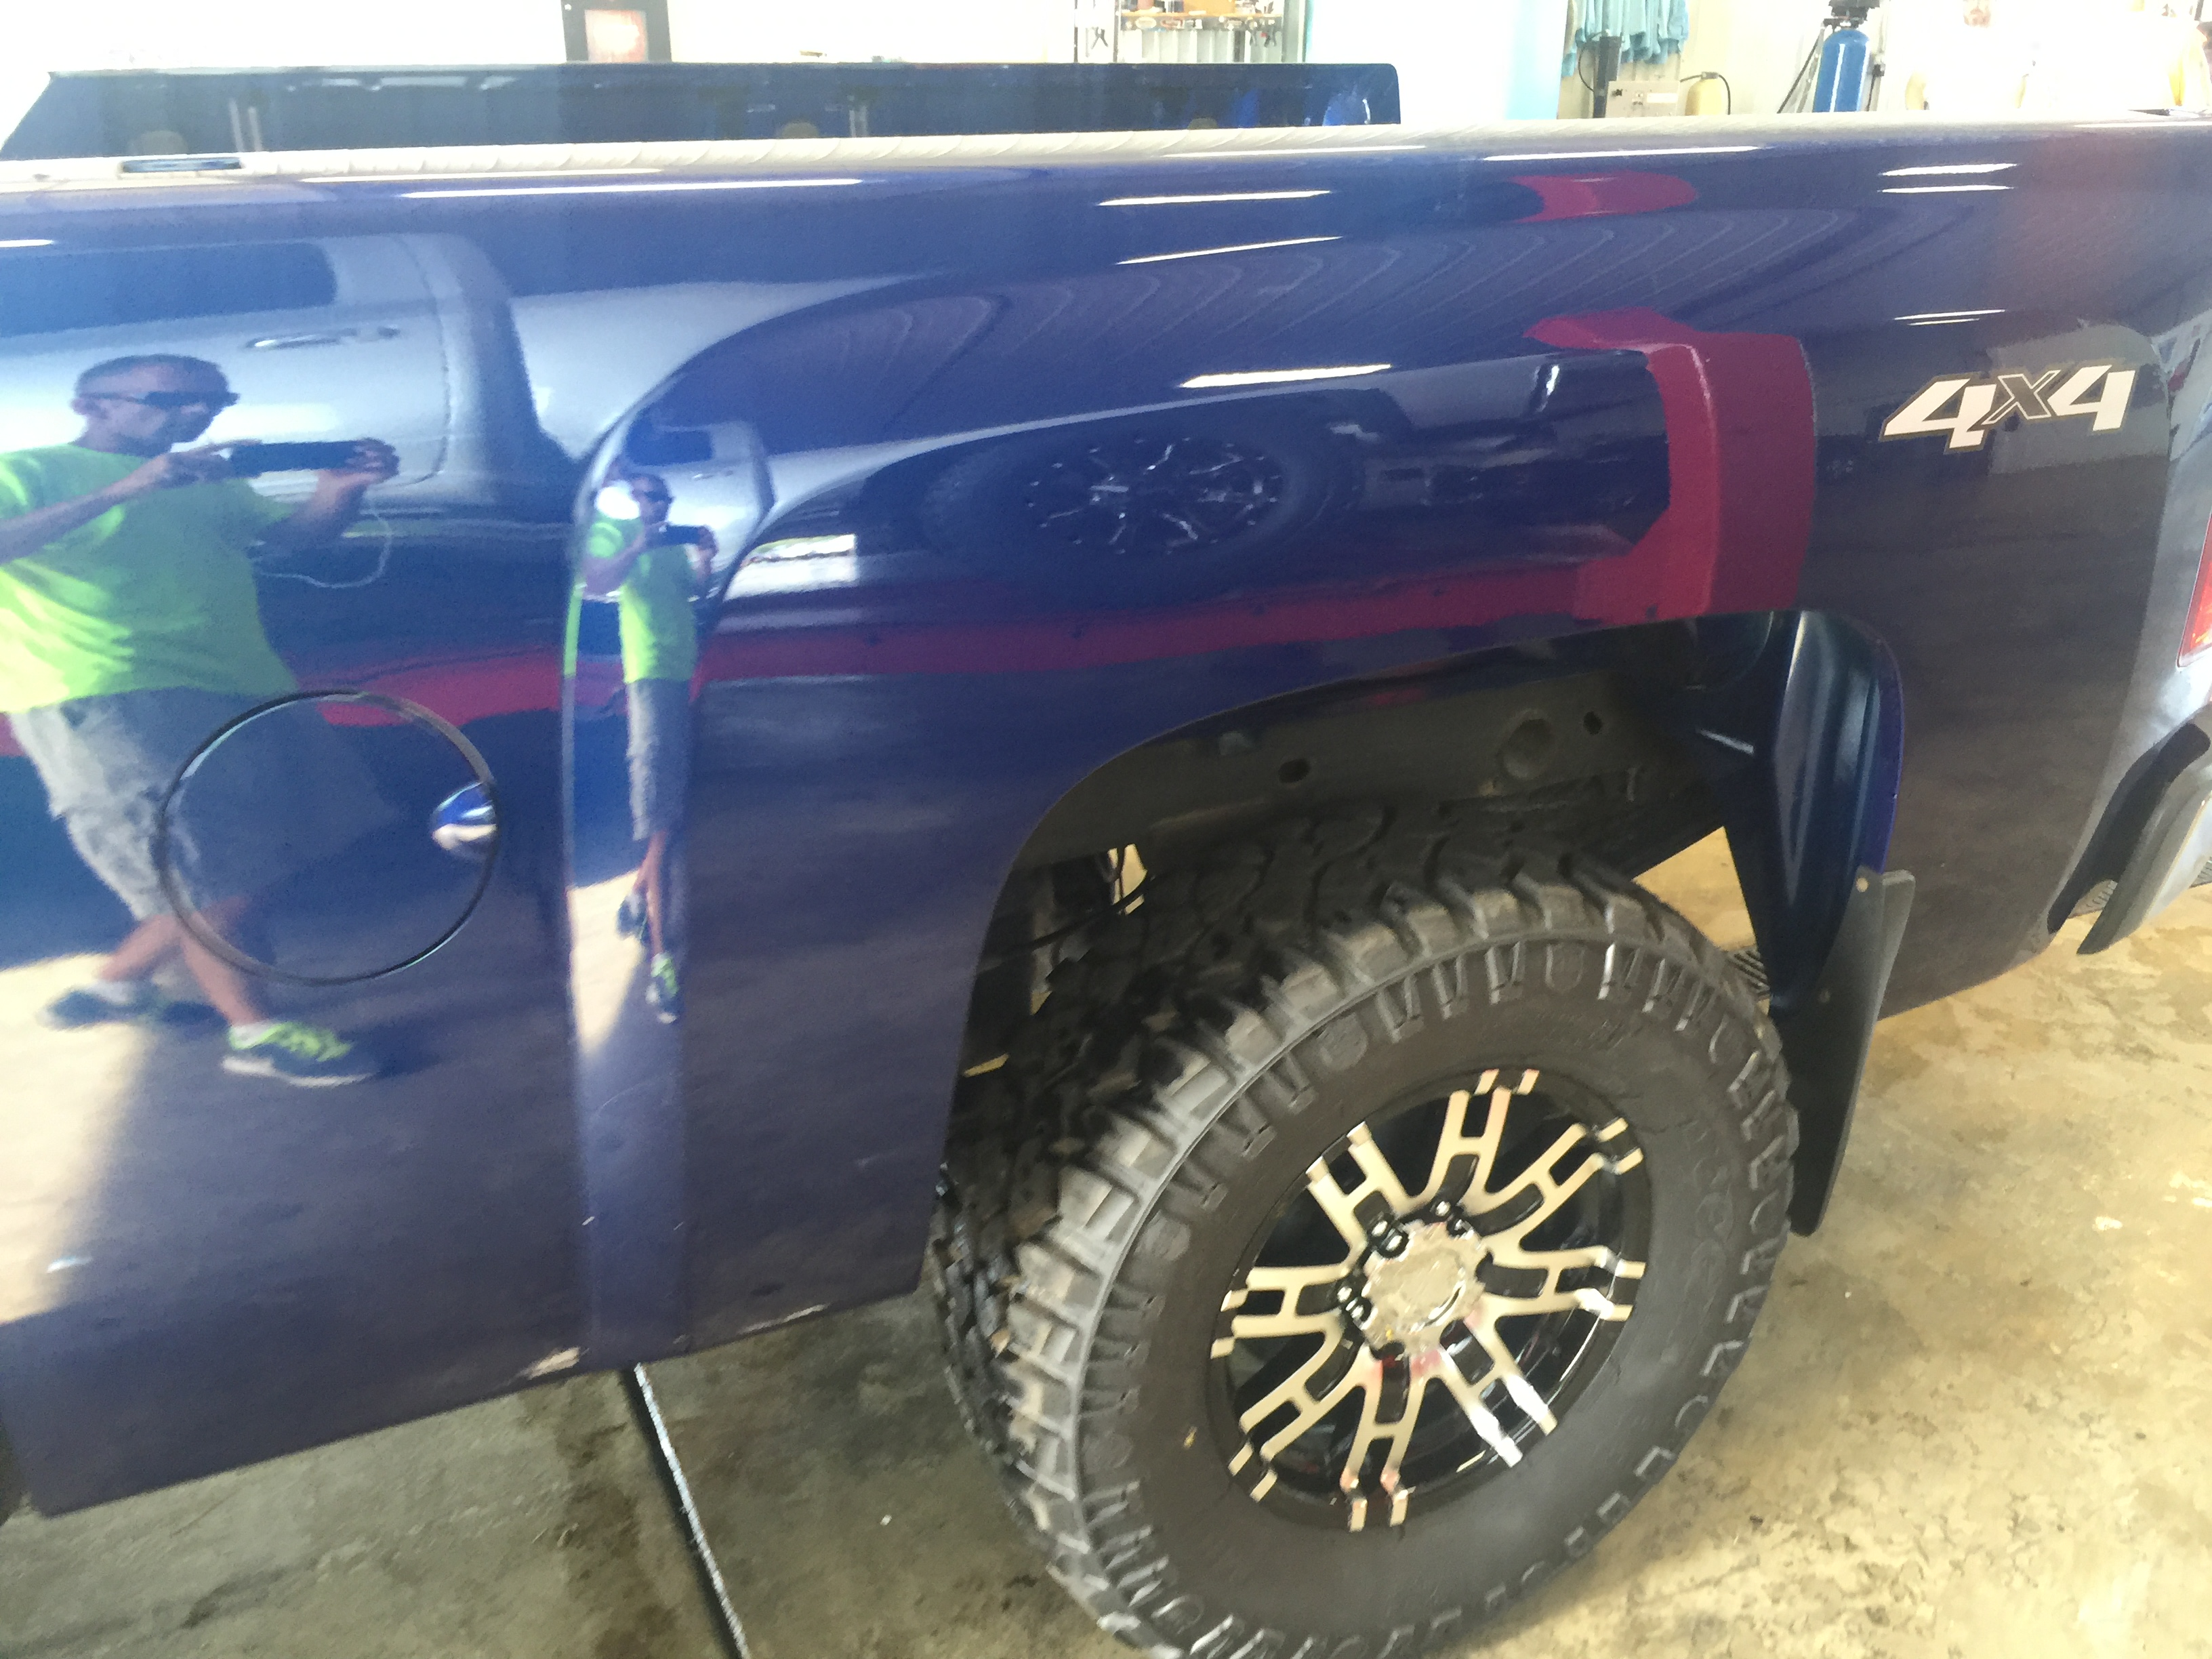 2013 Chevy Silverado, dent repair on the bedside removed with paintless dent removal, in or around Springfield, IL, http://217dent.com